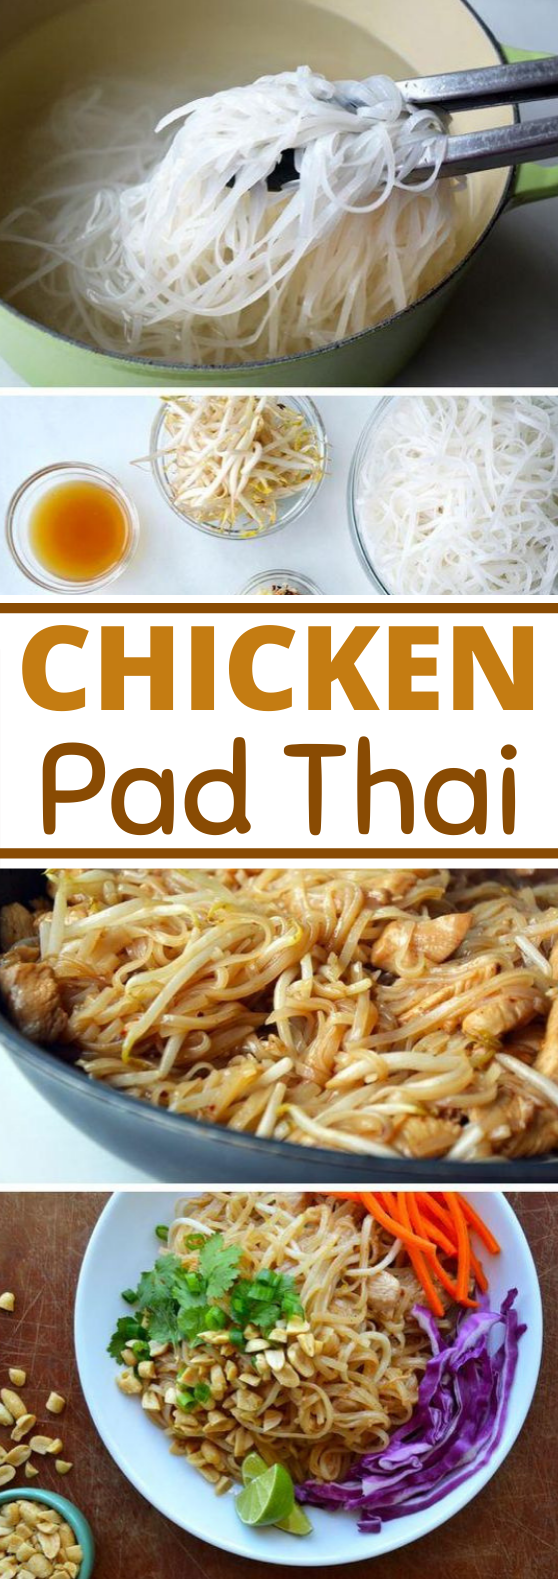 Easy Pad Thai with Chicken #dinner #noodles #thai #recipes #easy